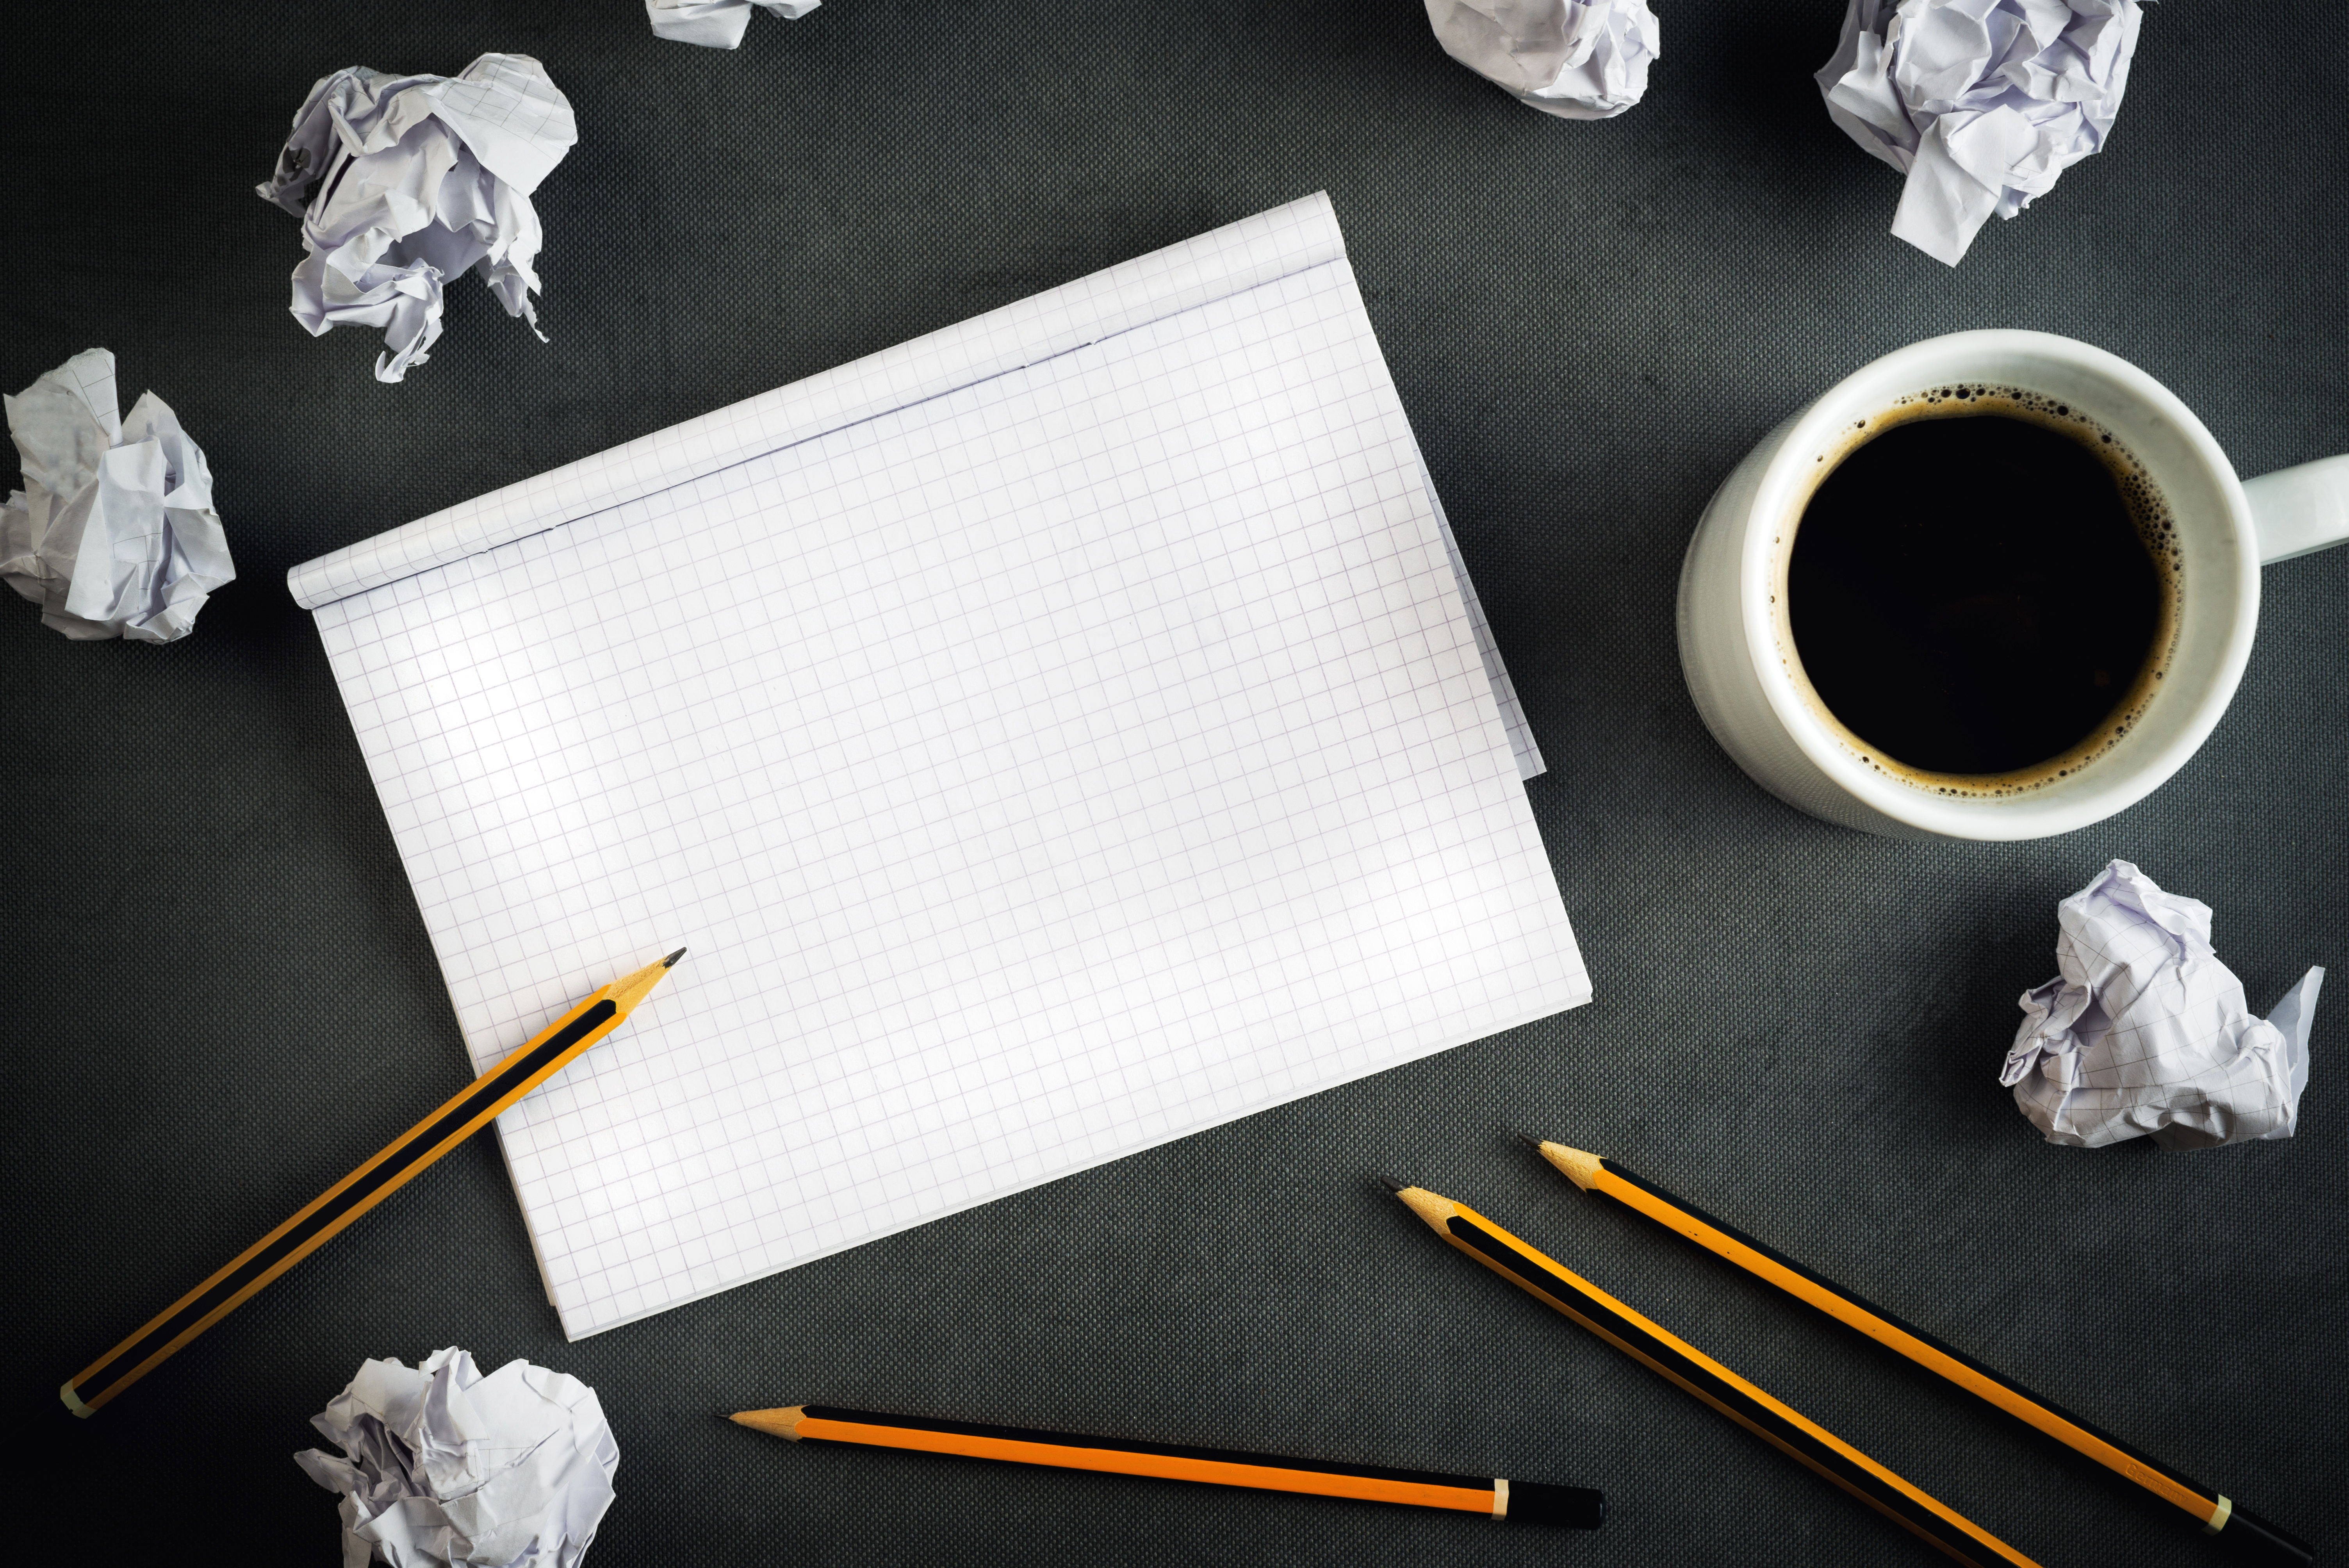 Crumpled paper, coffee and a blank sheet of paper - an all too familiar indicator of writer's block.